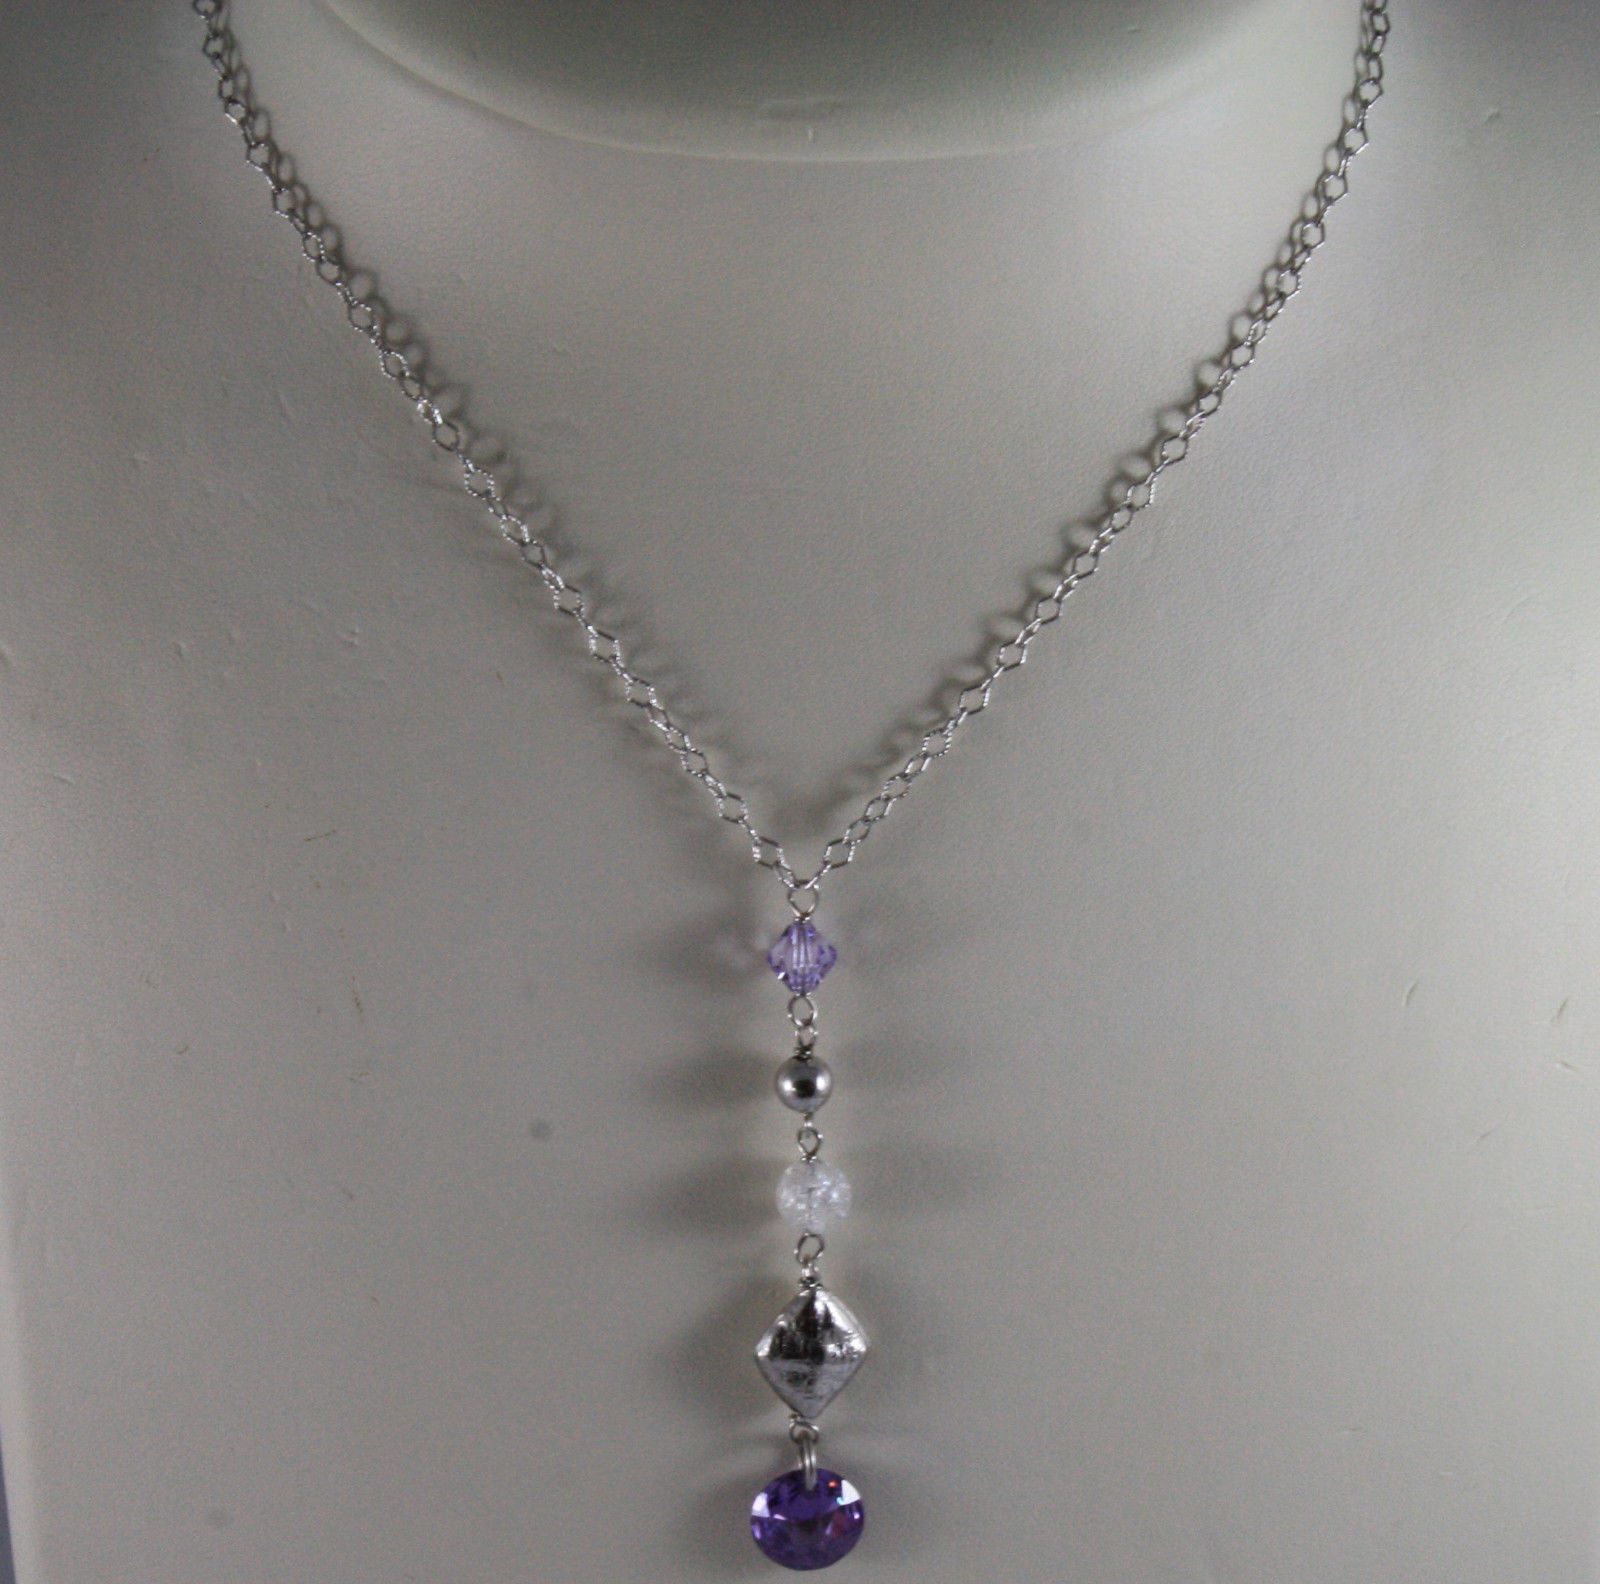 .925 SILVER RHODIUM NECKLACE WITH PURPLE AND TRANSPARENT CRYSTALS AND RHOMBUS